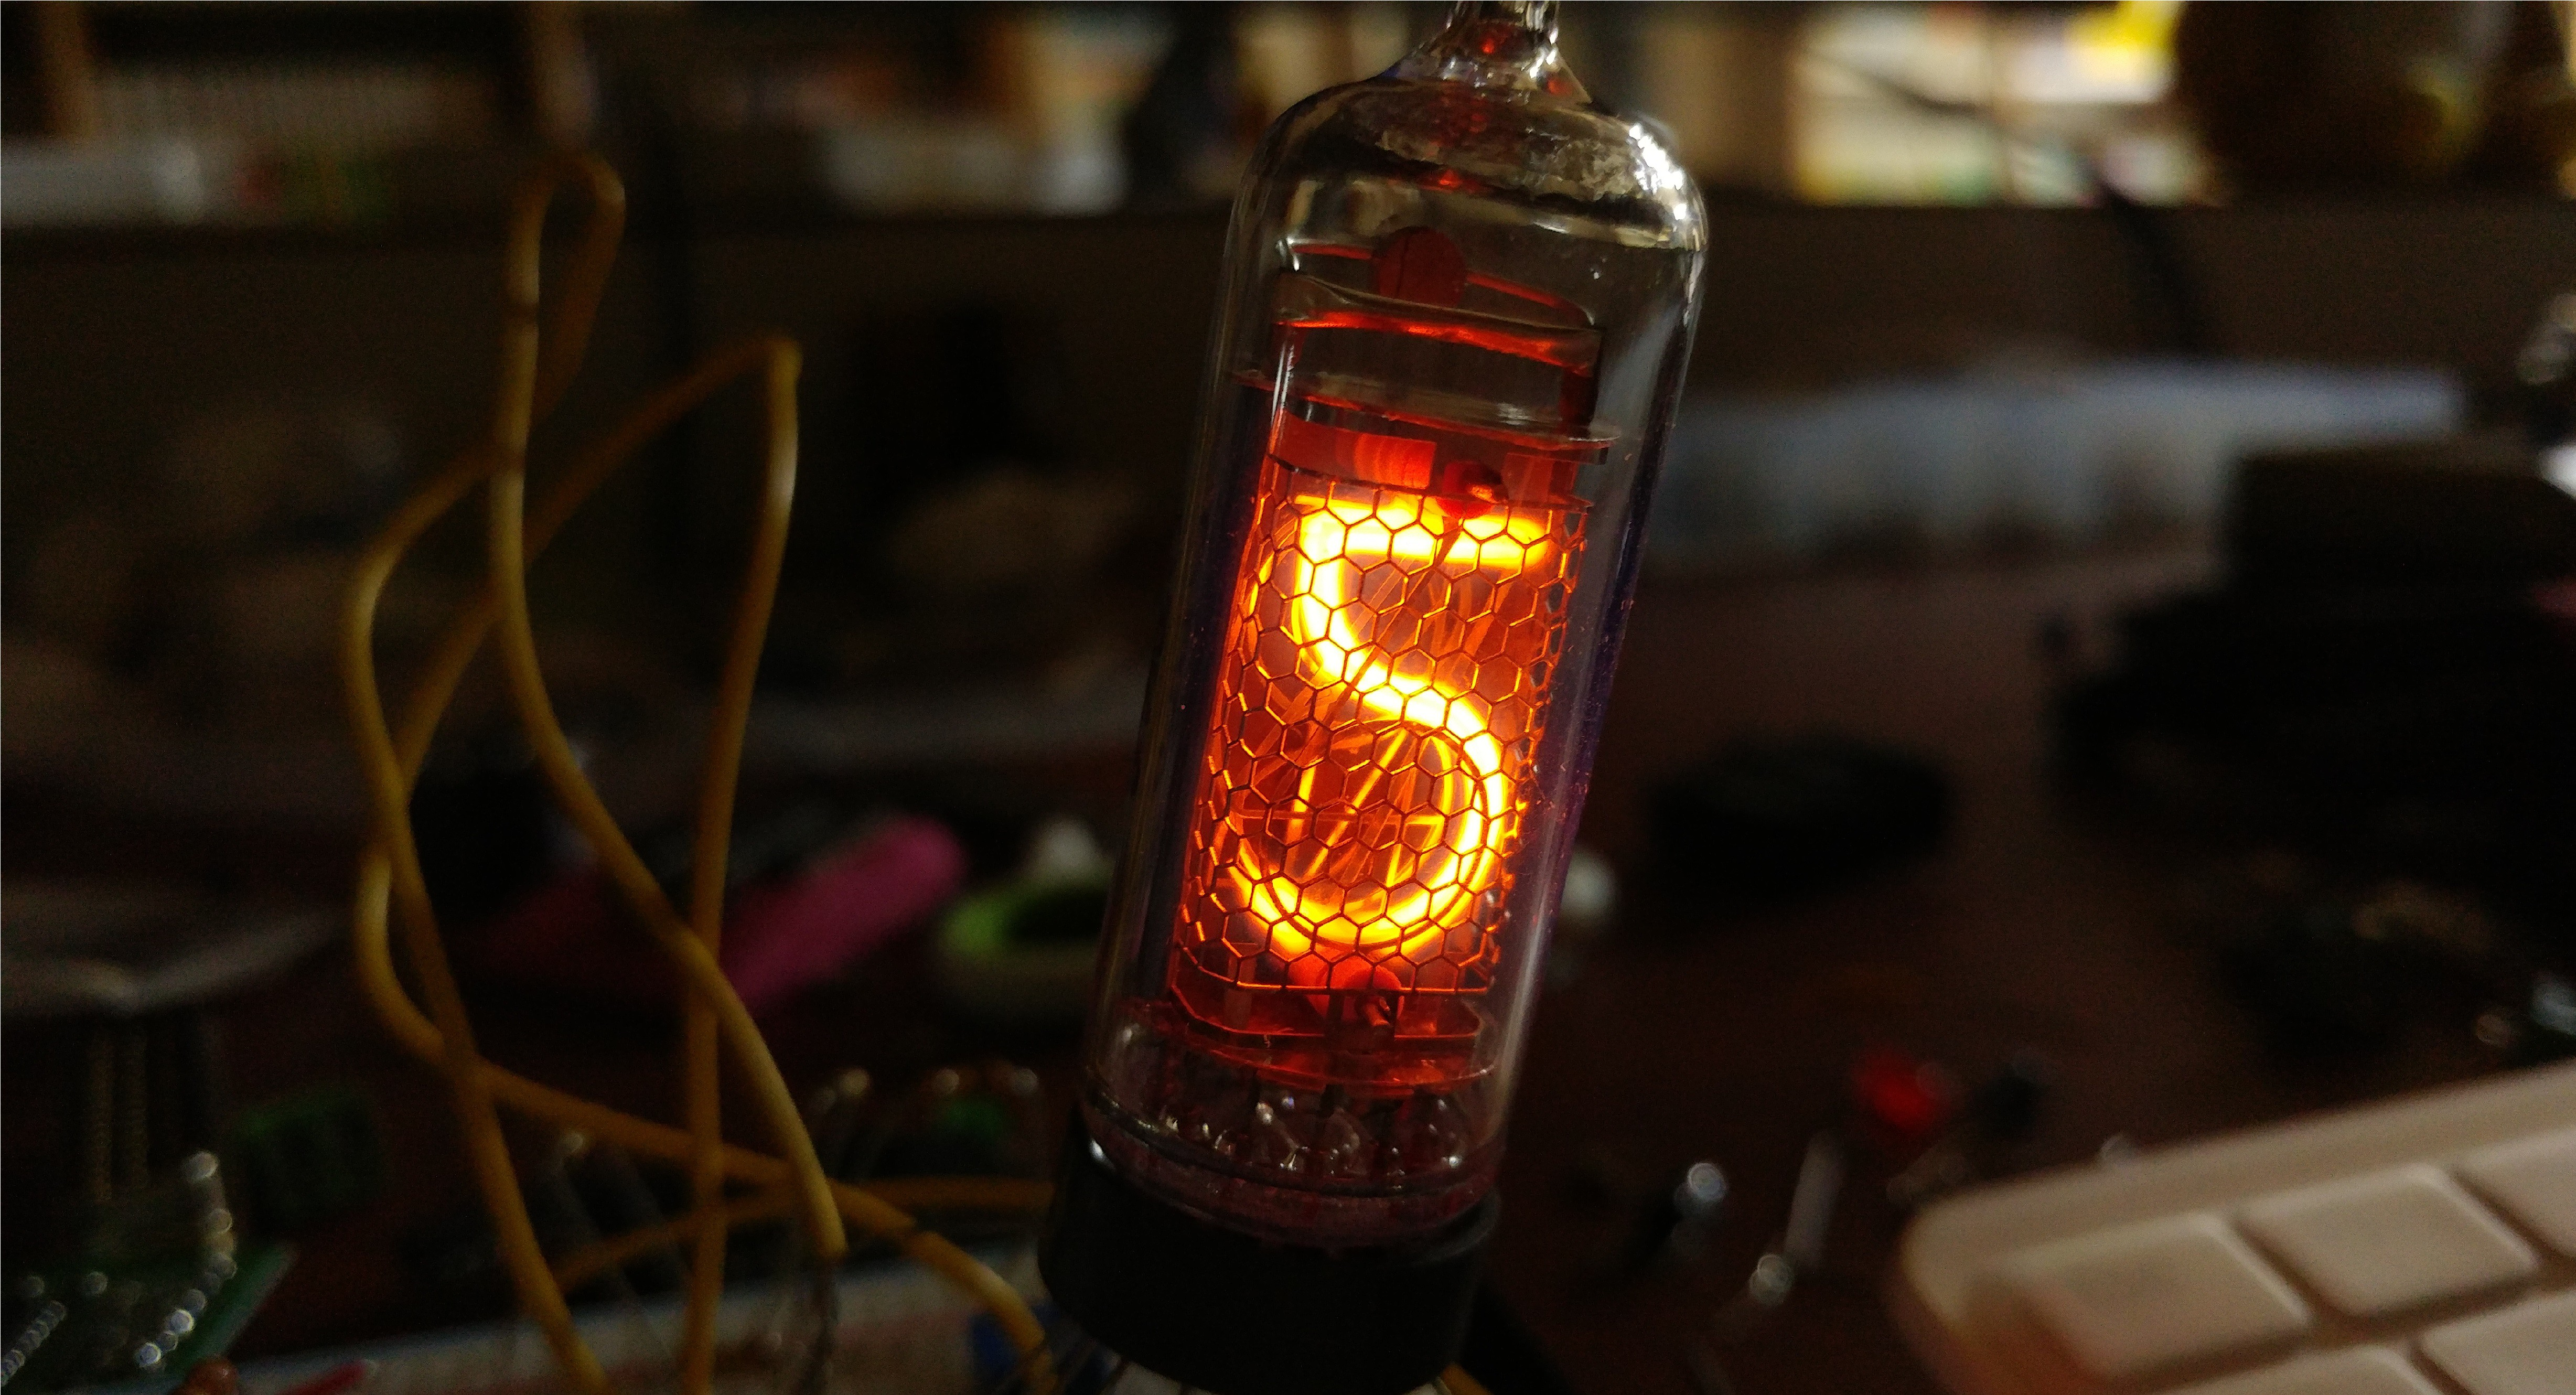 Nixie Tube Is A Cold Cathode Display Special Kind Of Neon Lamp That Can Numbers From 0 To 9or Alphabetic Or Characters